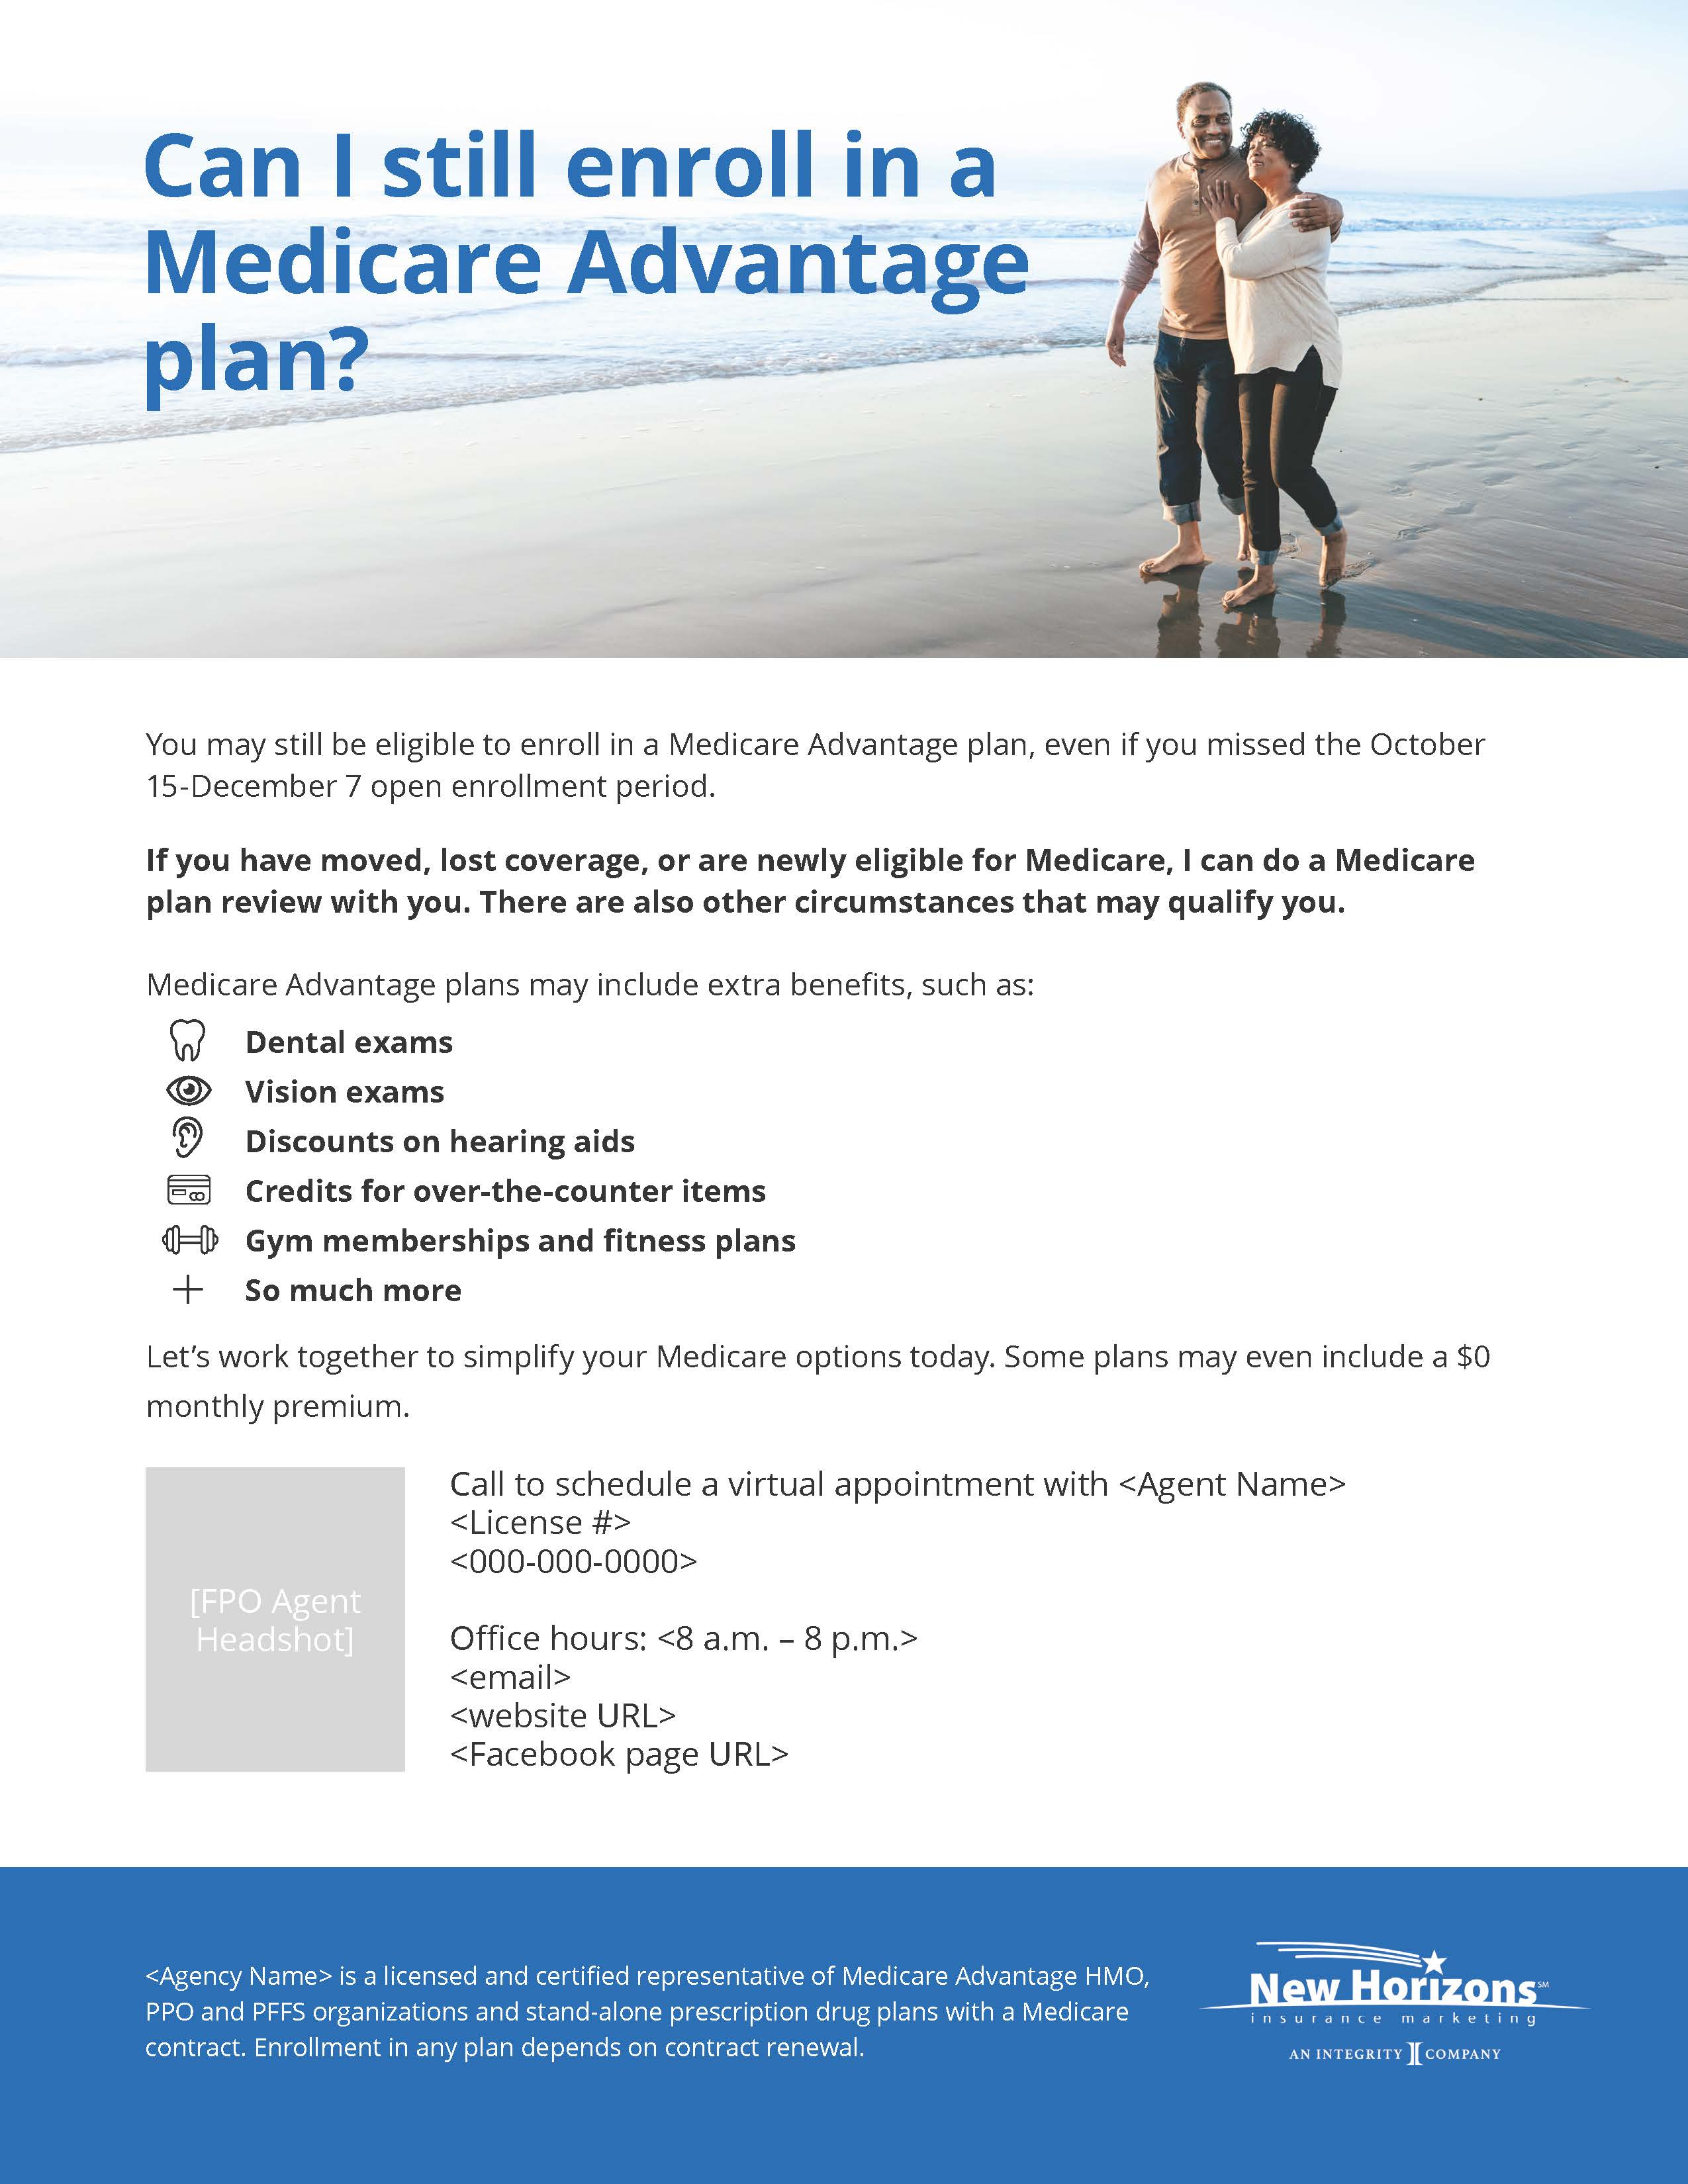 how-to-market-medicare-advantage-communications-example